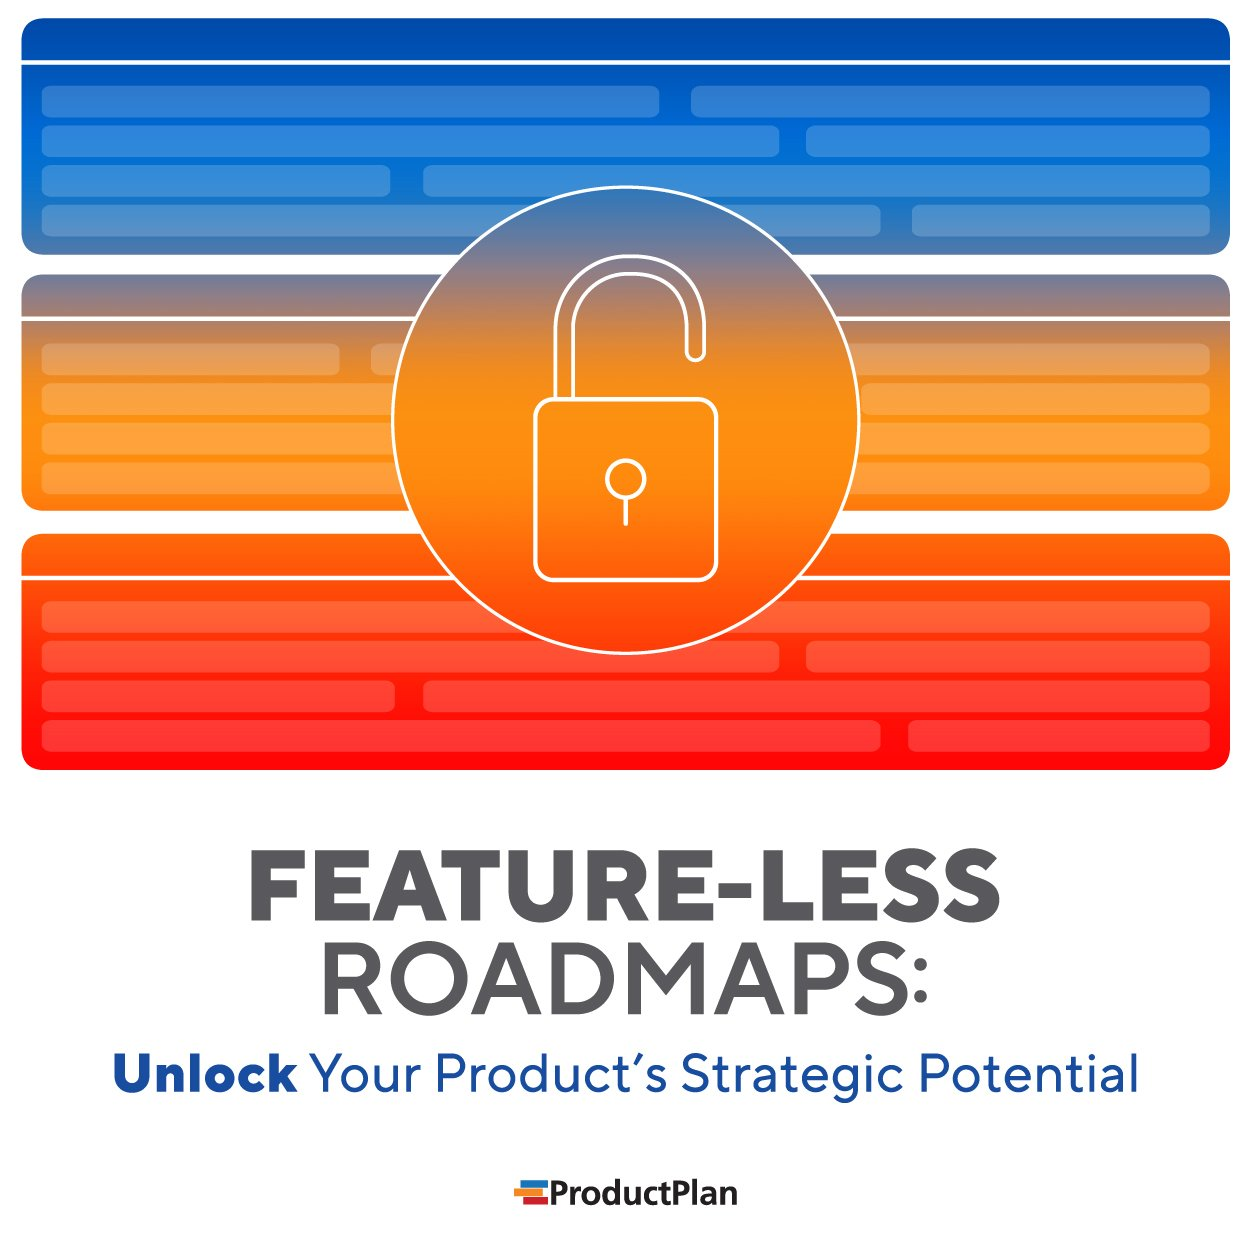 Feature-Less Roadmaps Guide Cover